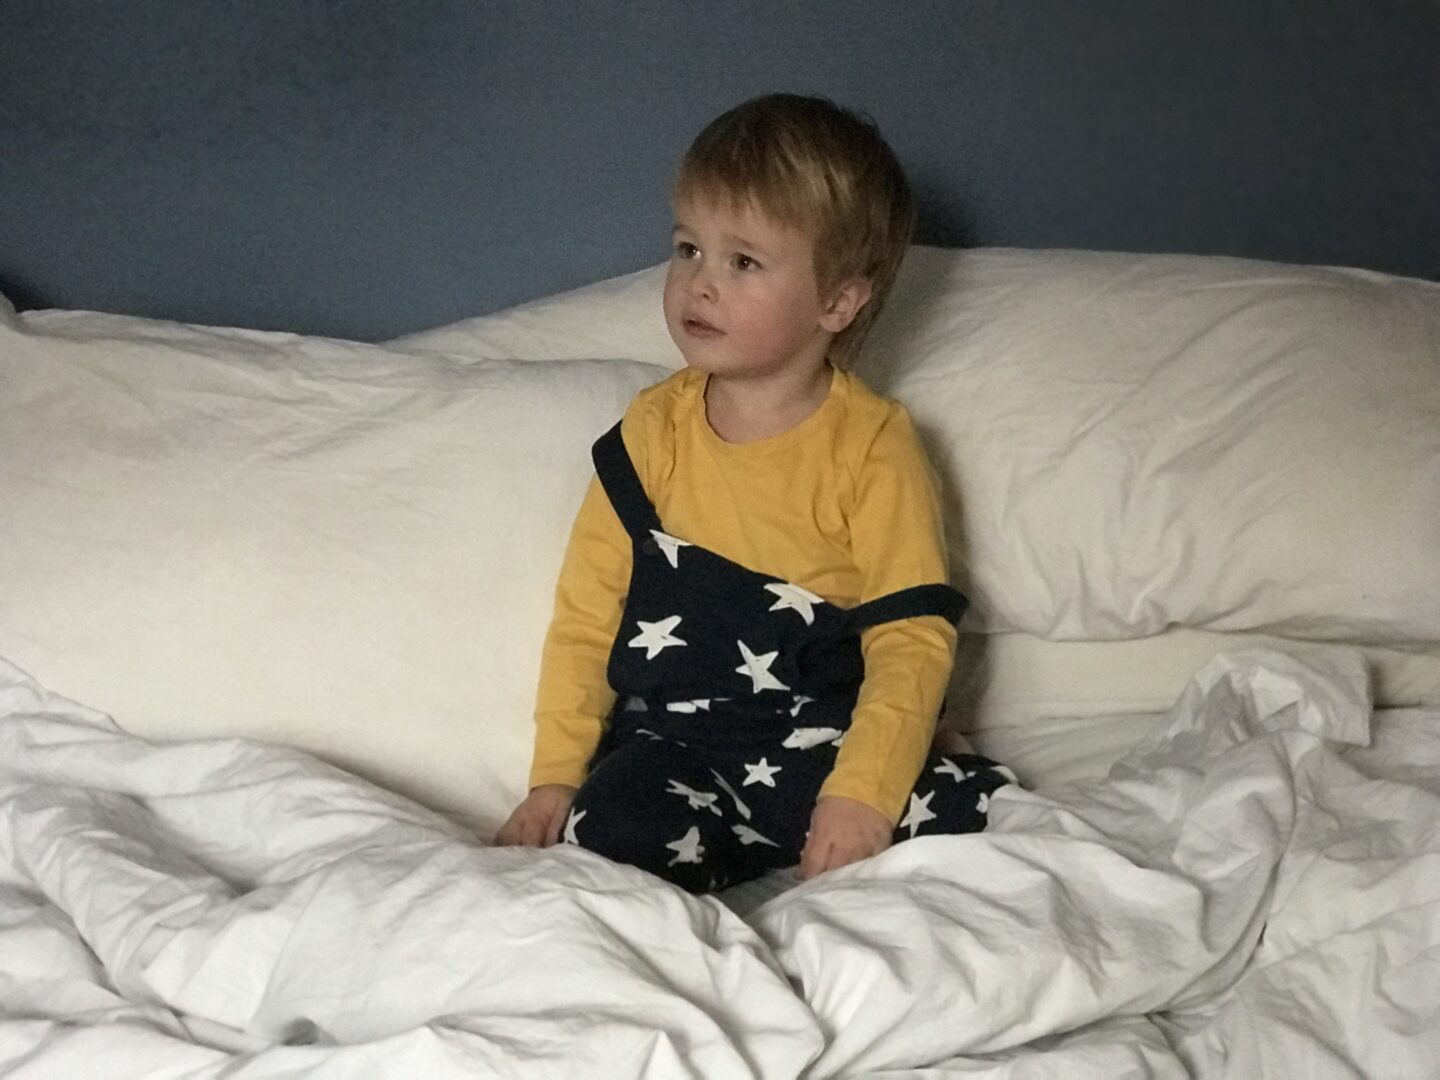 Dexter sitting on the bed wearing a yellow t shirt and navy blue dungarees with white stars on